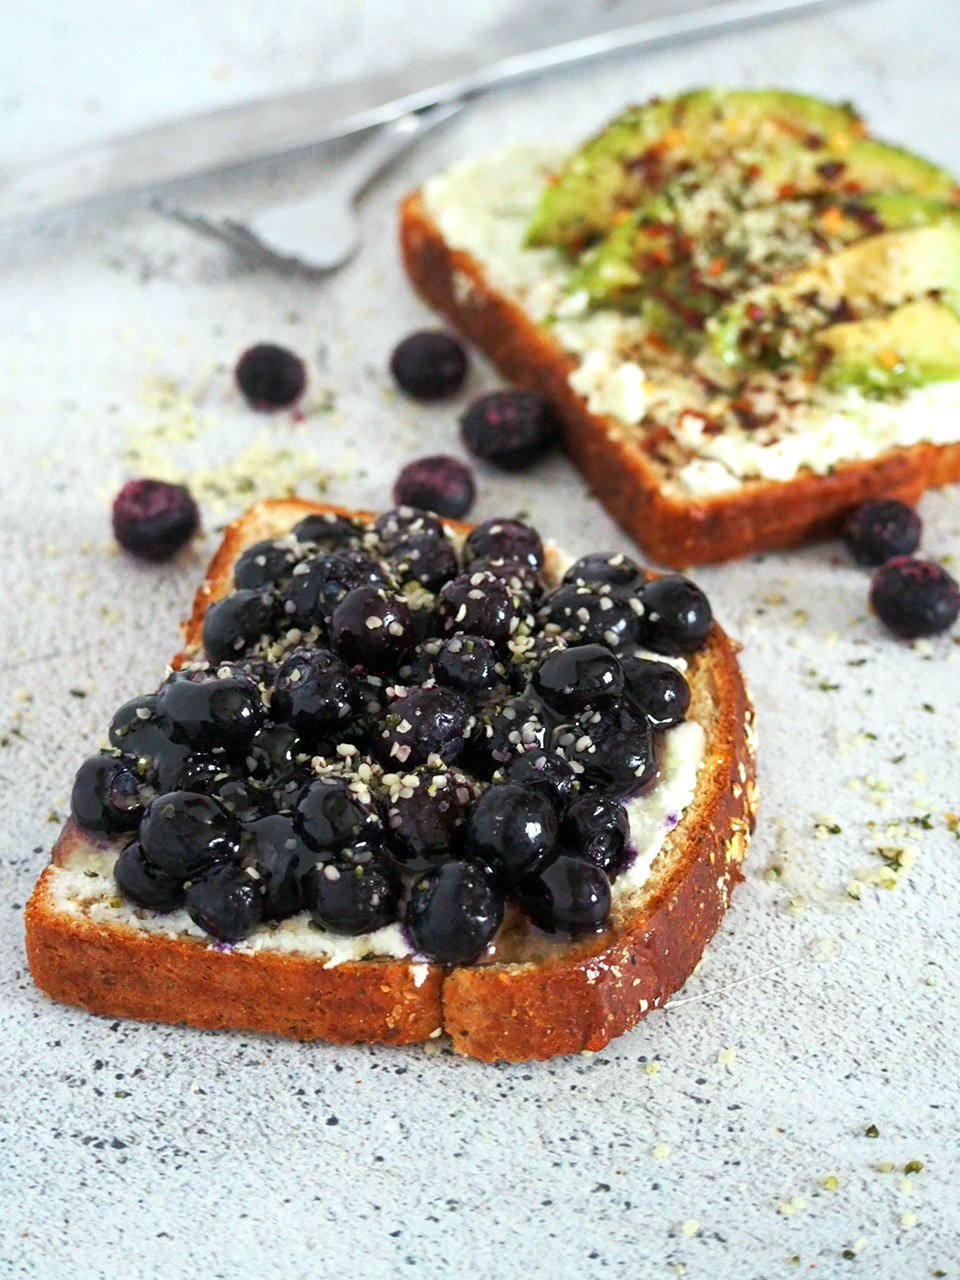 Blueberry breakfast toast with hemp seeds sprinkled on top.